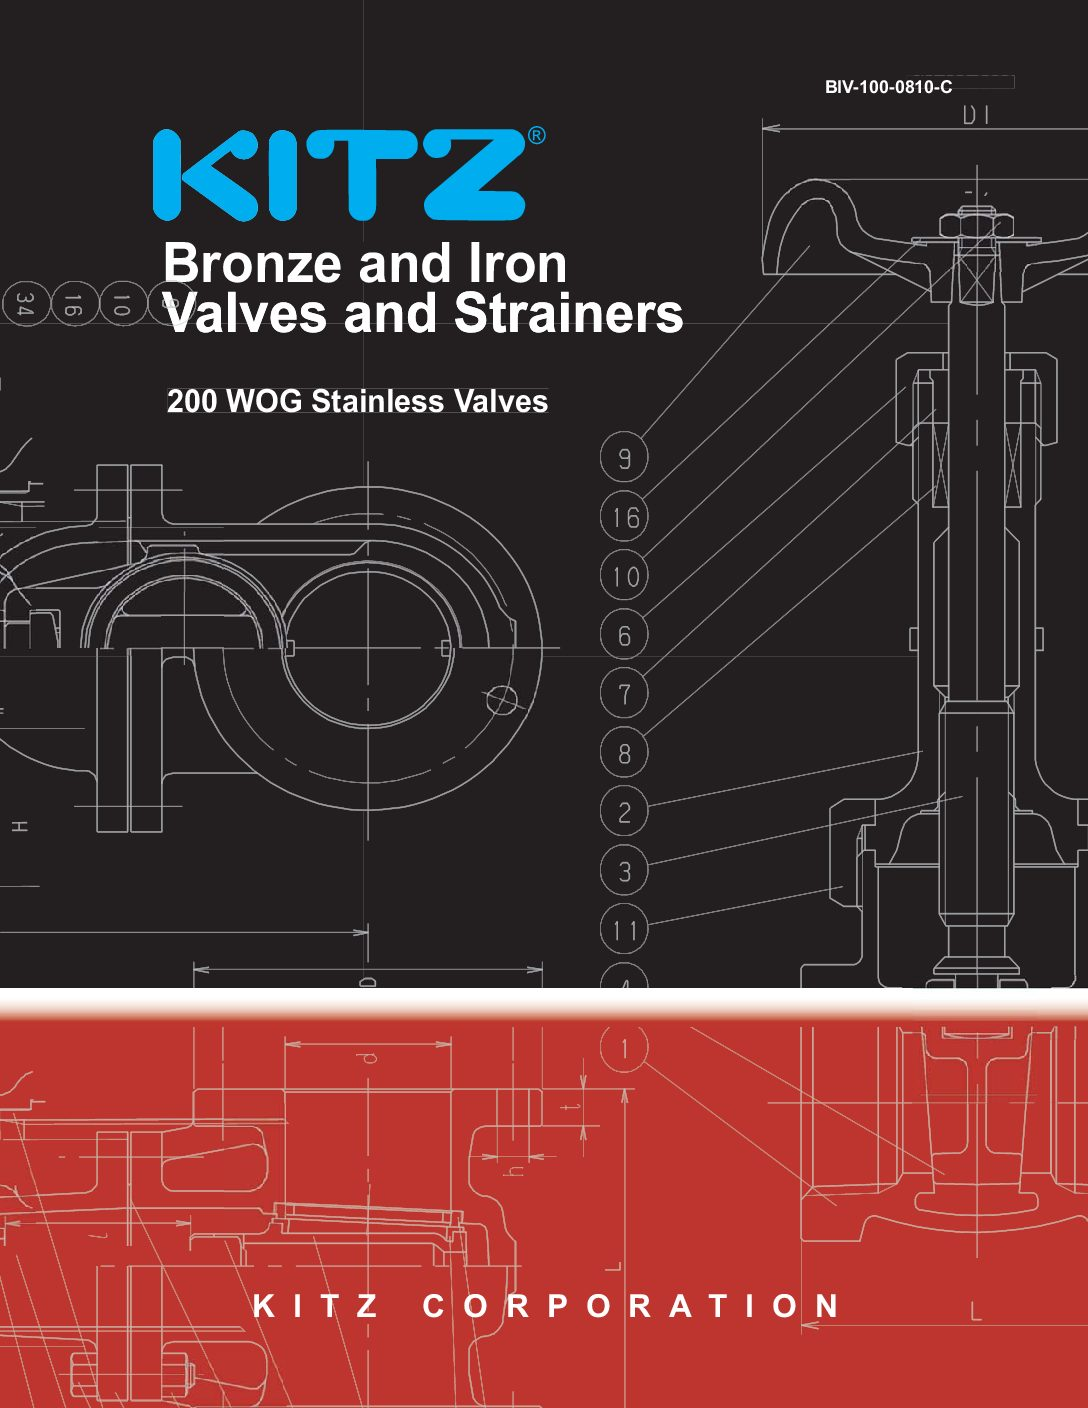 hight resolution of kitz bronze and iron valves and strainers